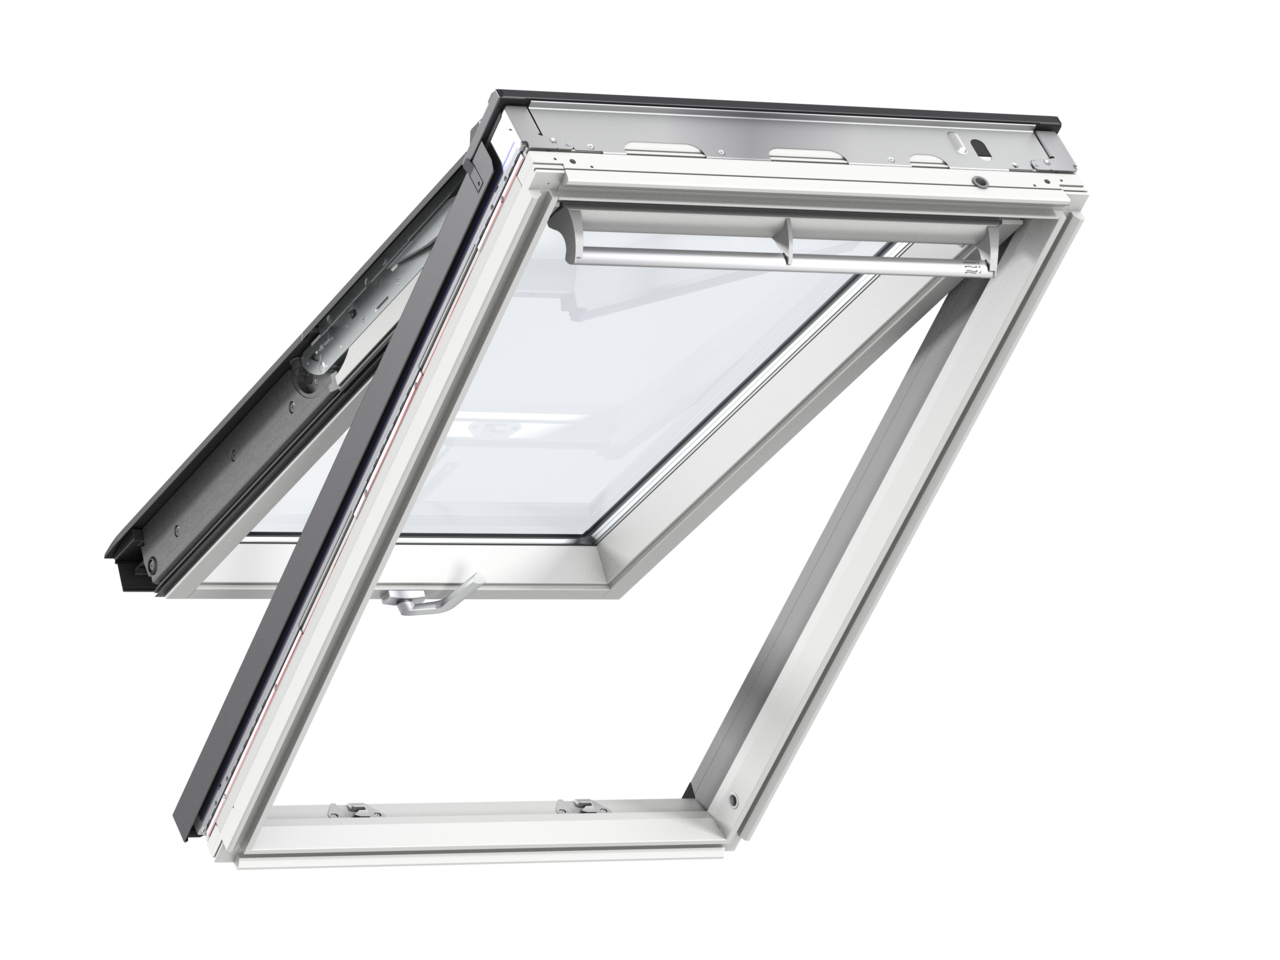 Velux GPL UK08 1340 x 980mm Top Hung Standard 70Pane Roof Window - White Painted